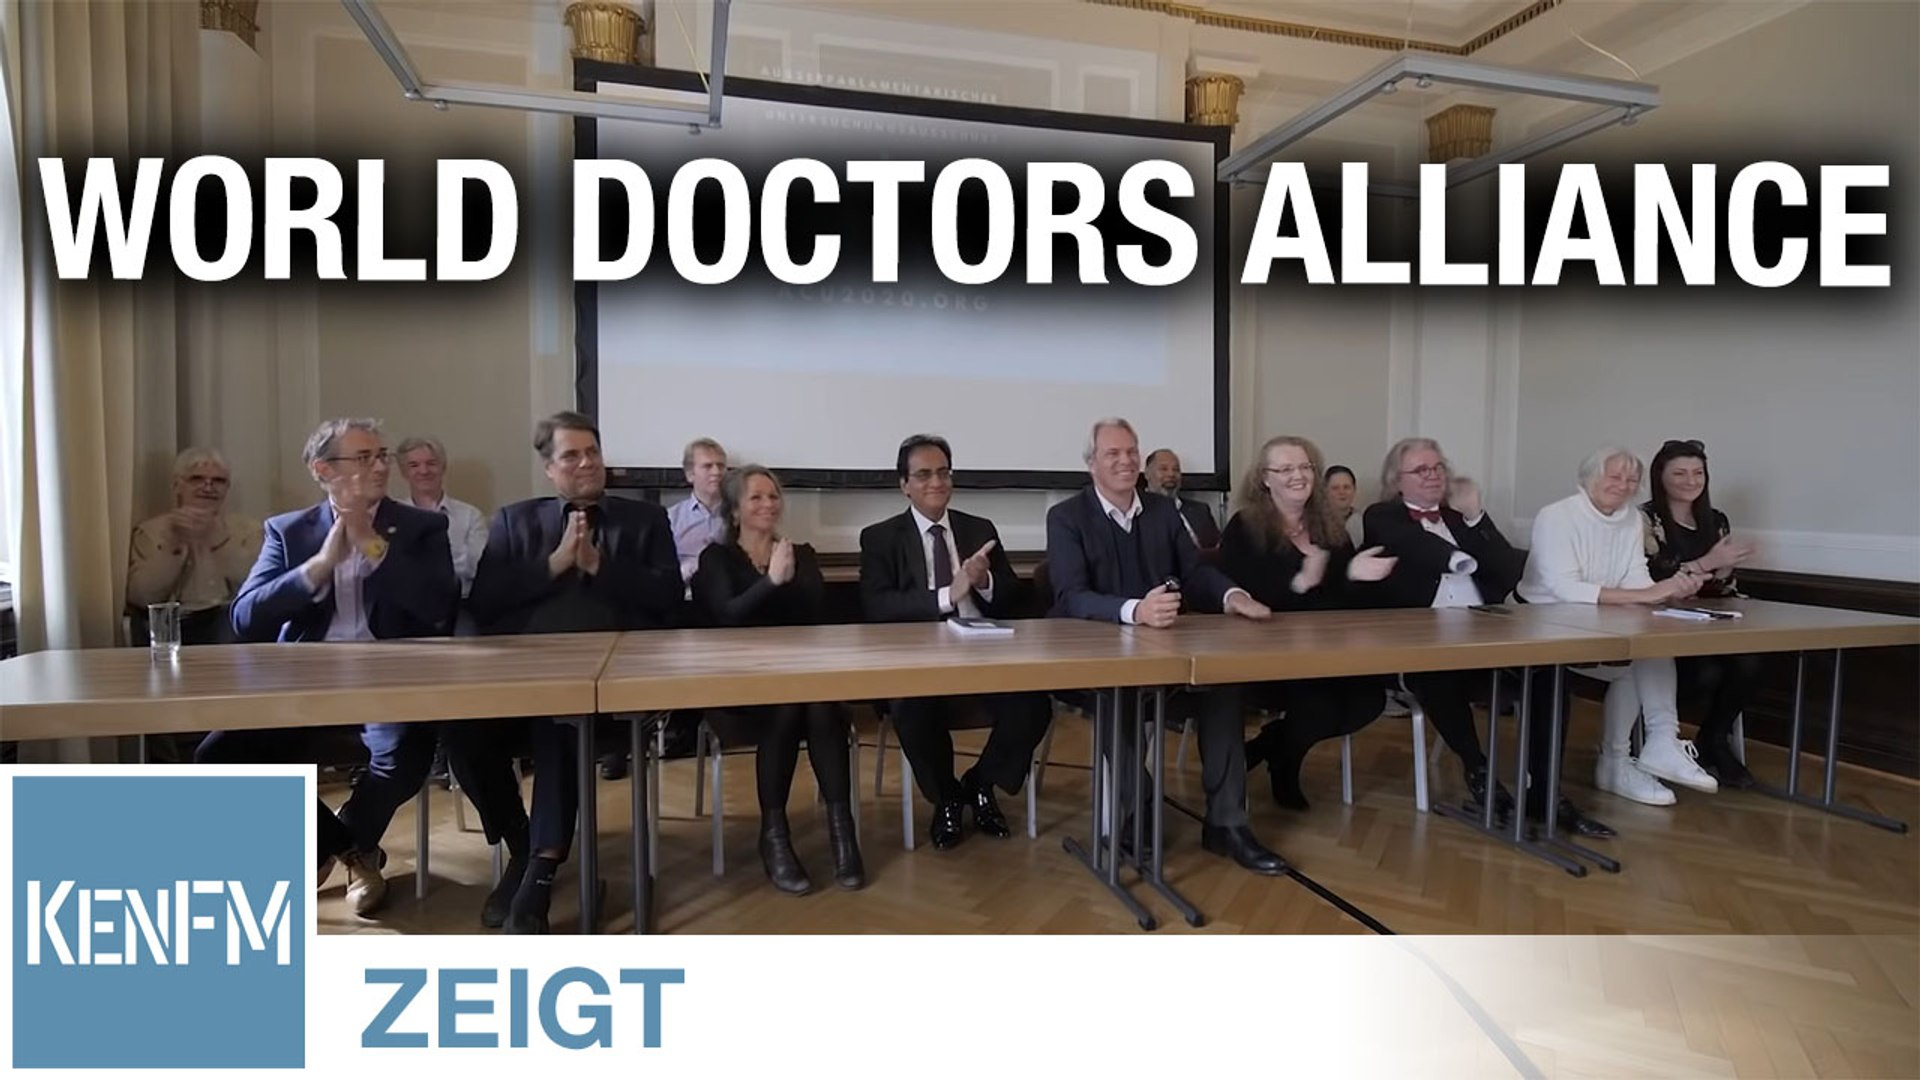 World Doctors Alliance Better Normal, not New Normal – Berlin, 10.10.2020 – www.ACU2020.org